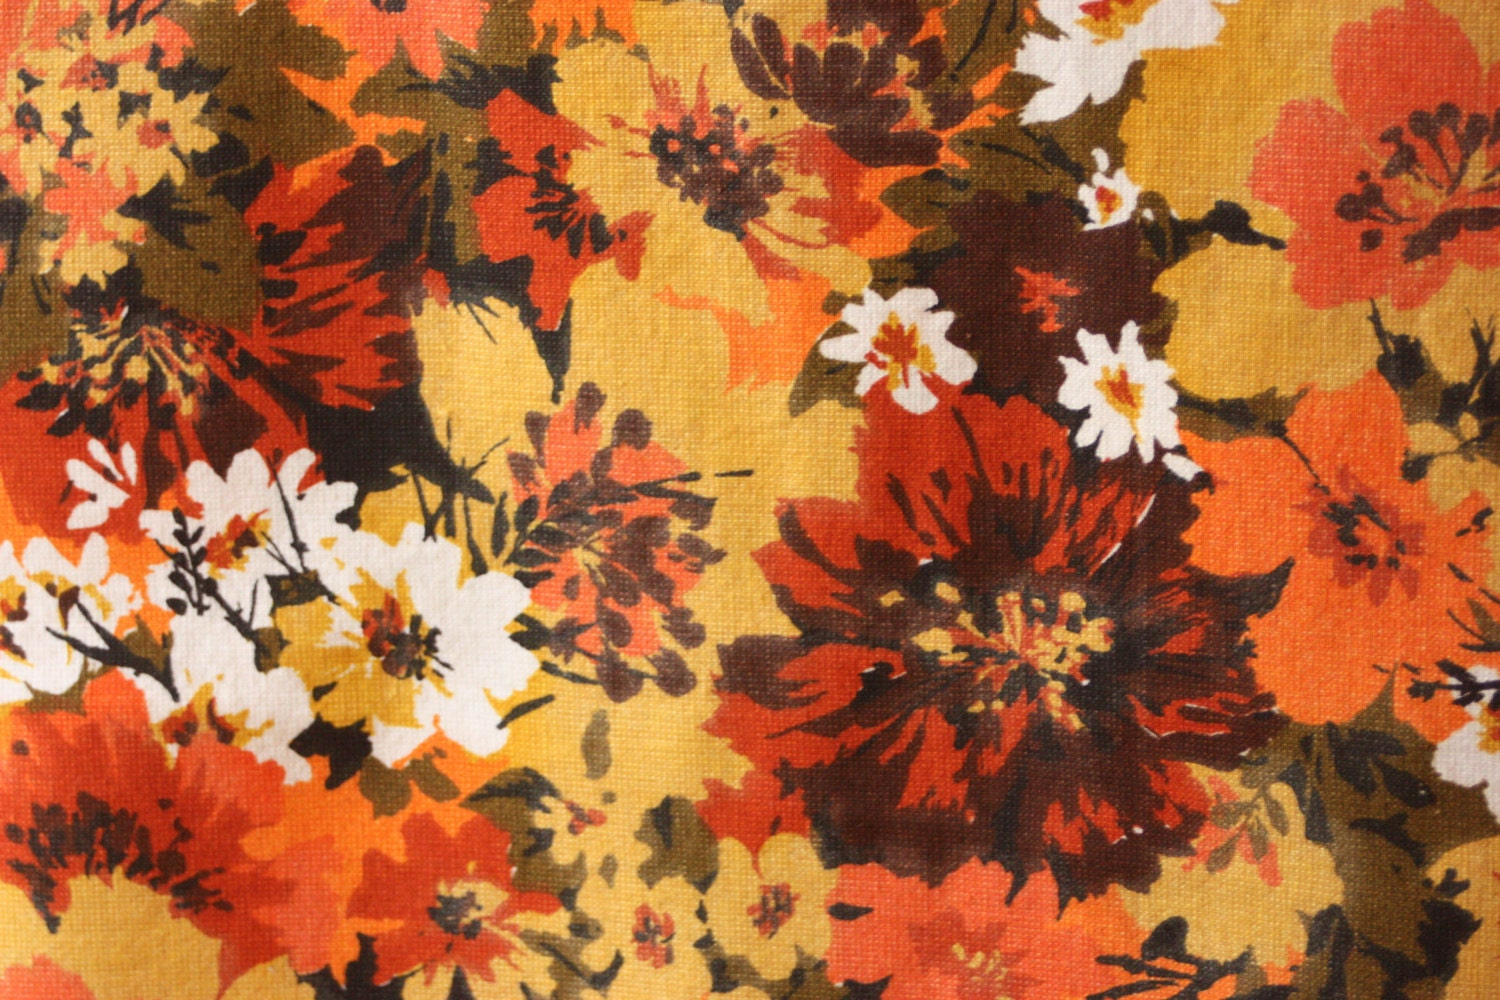 Vintage Fabric Brown Orange Yellow Flowers Mod by myvintagewhimsy